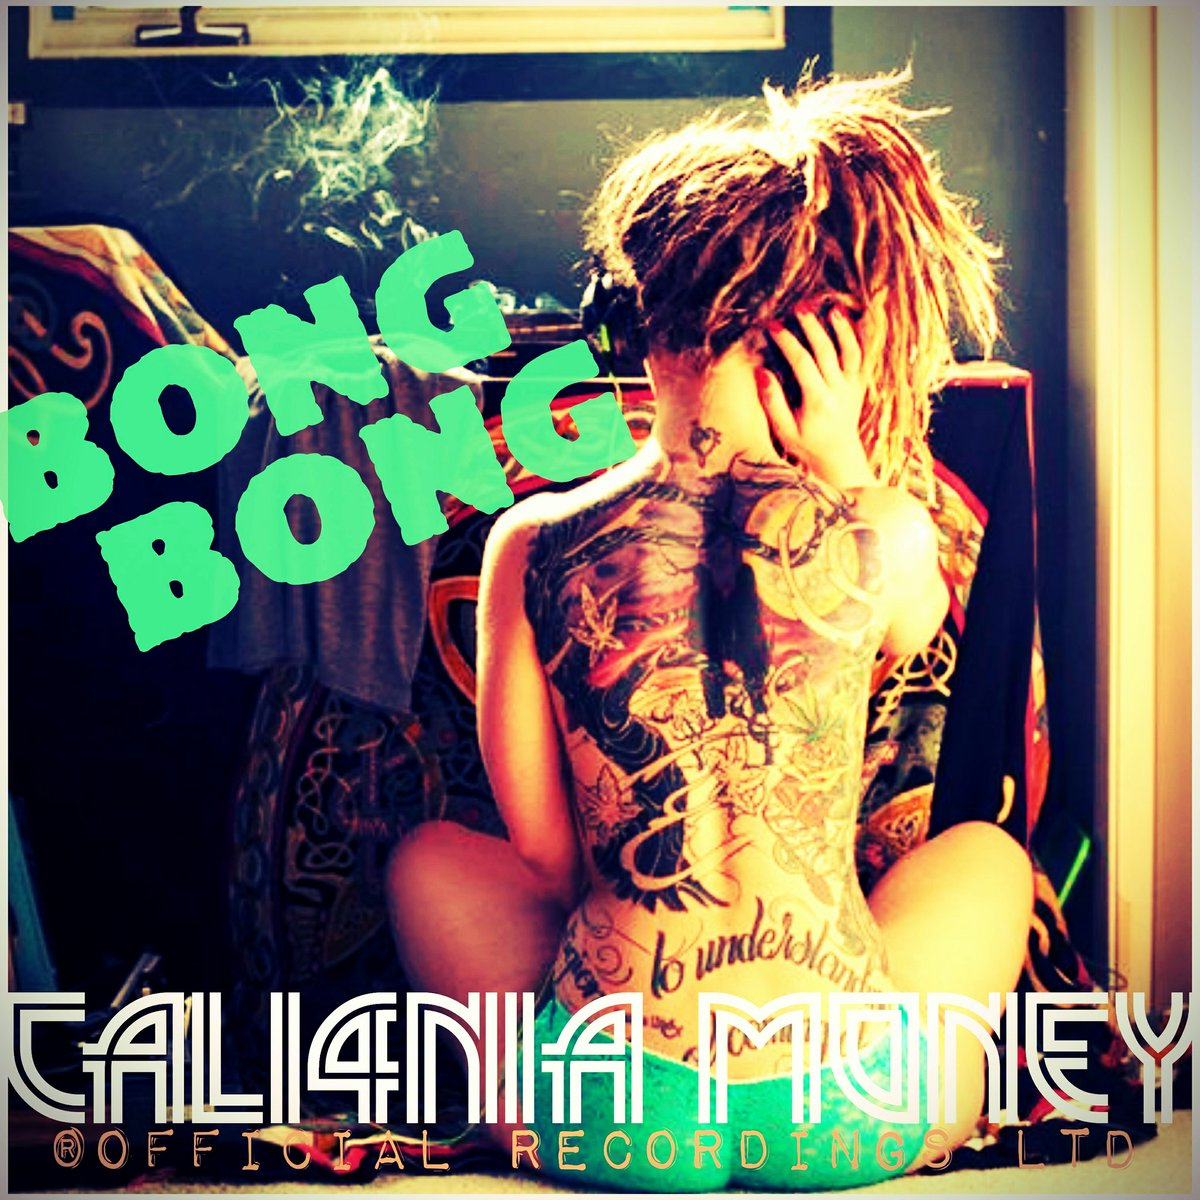 """Just dropped this!  BONG BONG - """"CALI4NIA MONEY""""  Out now @Bandcamp    #NewMusicDaily #NewMusicAlert #Hiphop #Rap #Beats #OFFICIAL #bandcamp  ®"""